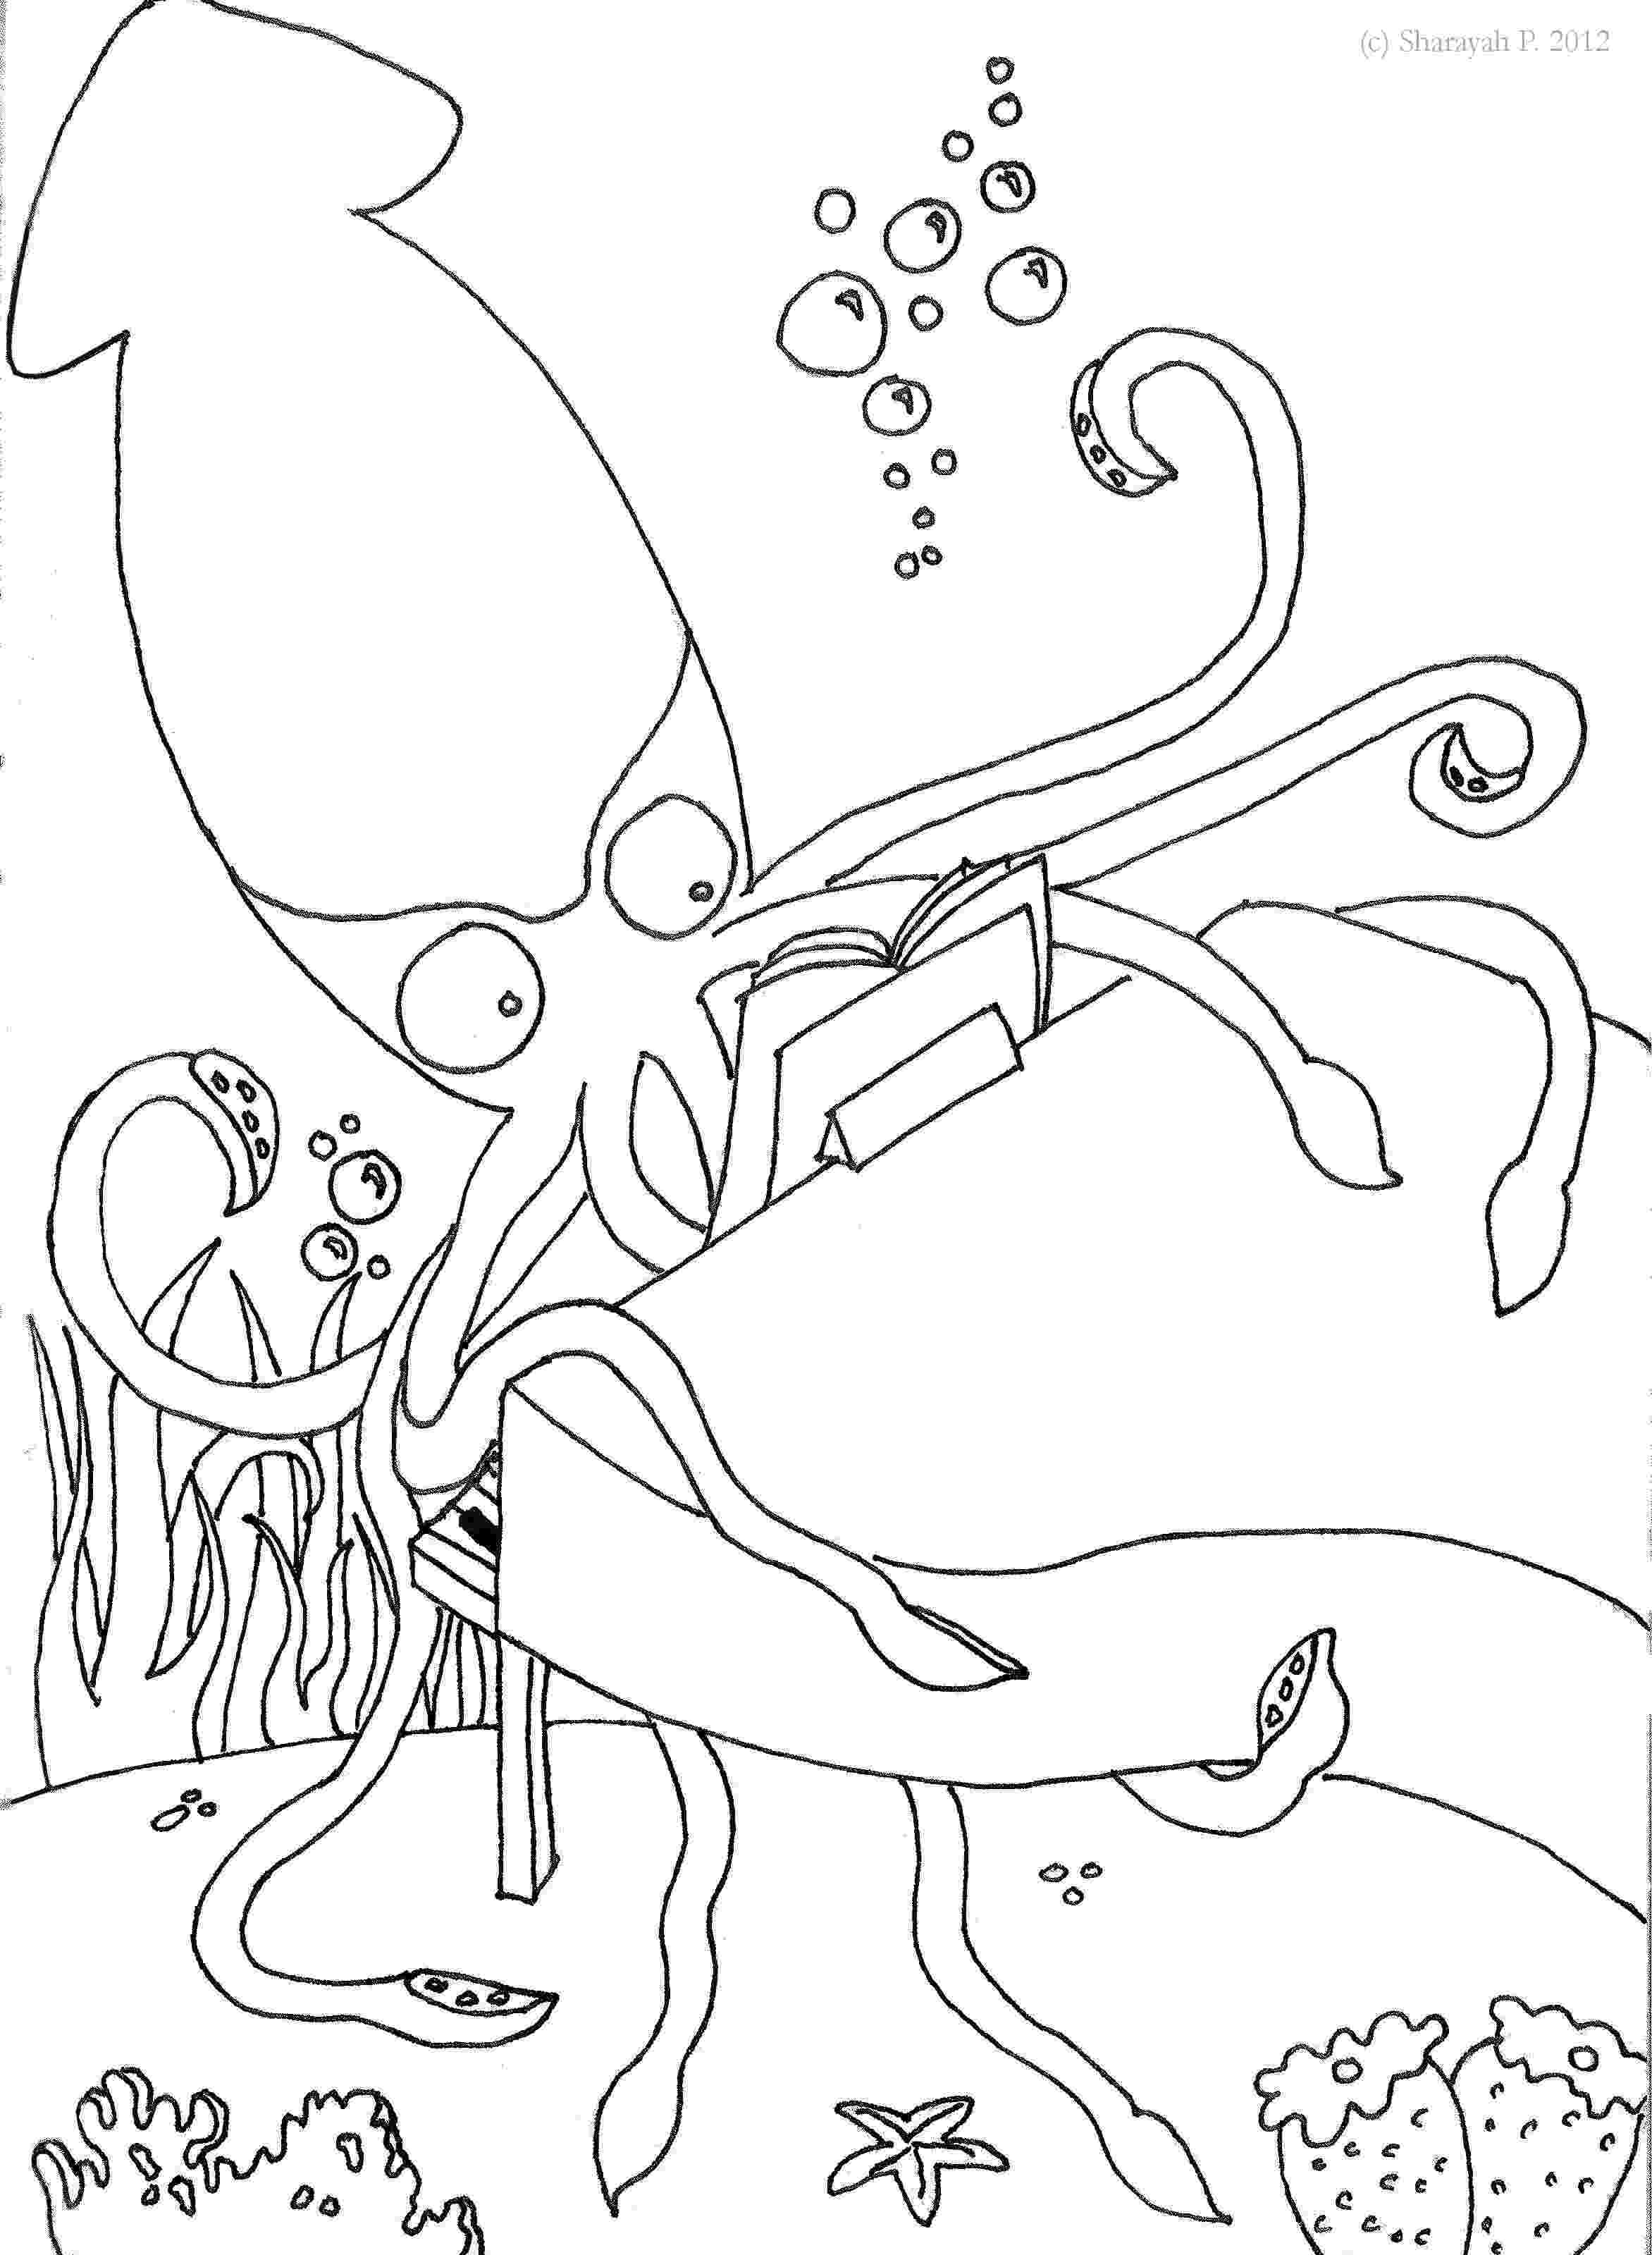 giant squid coloring pages giant squid attack game module interior brush and ink 1987 giant coloring pages squid